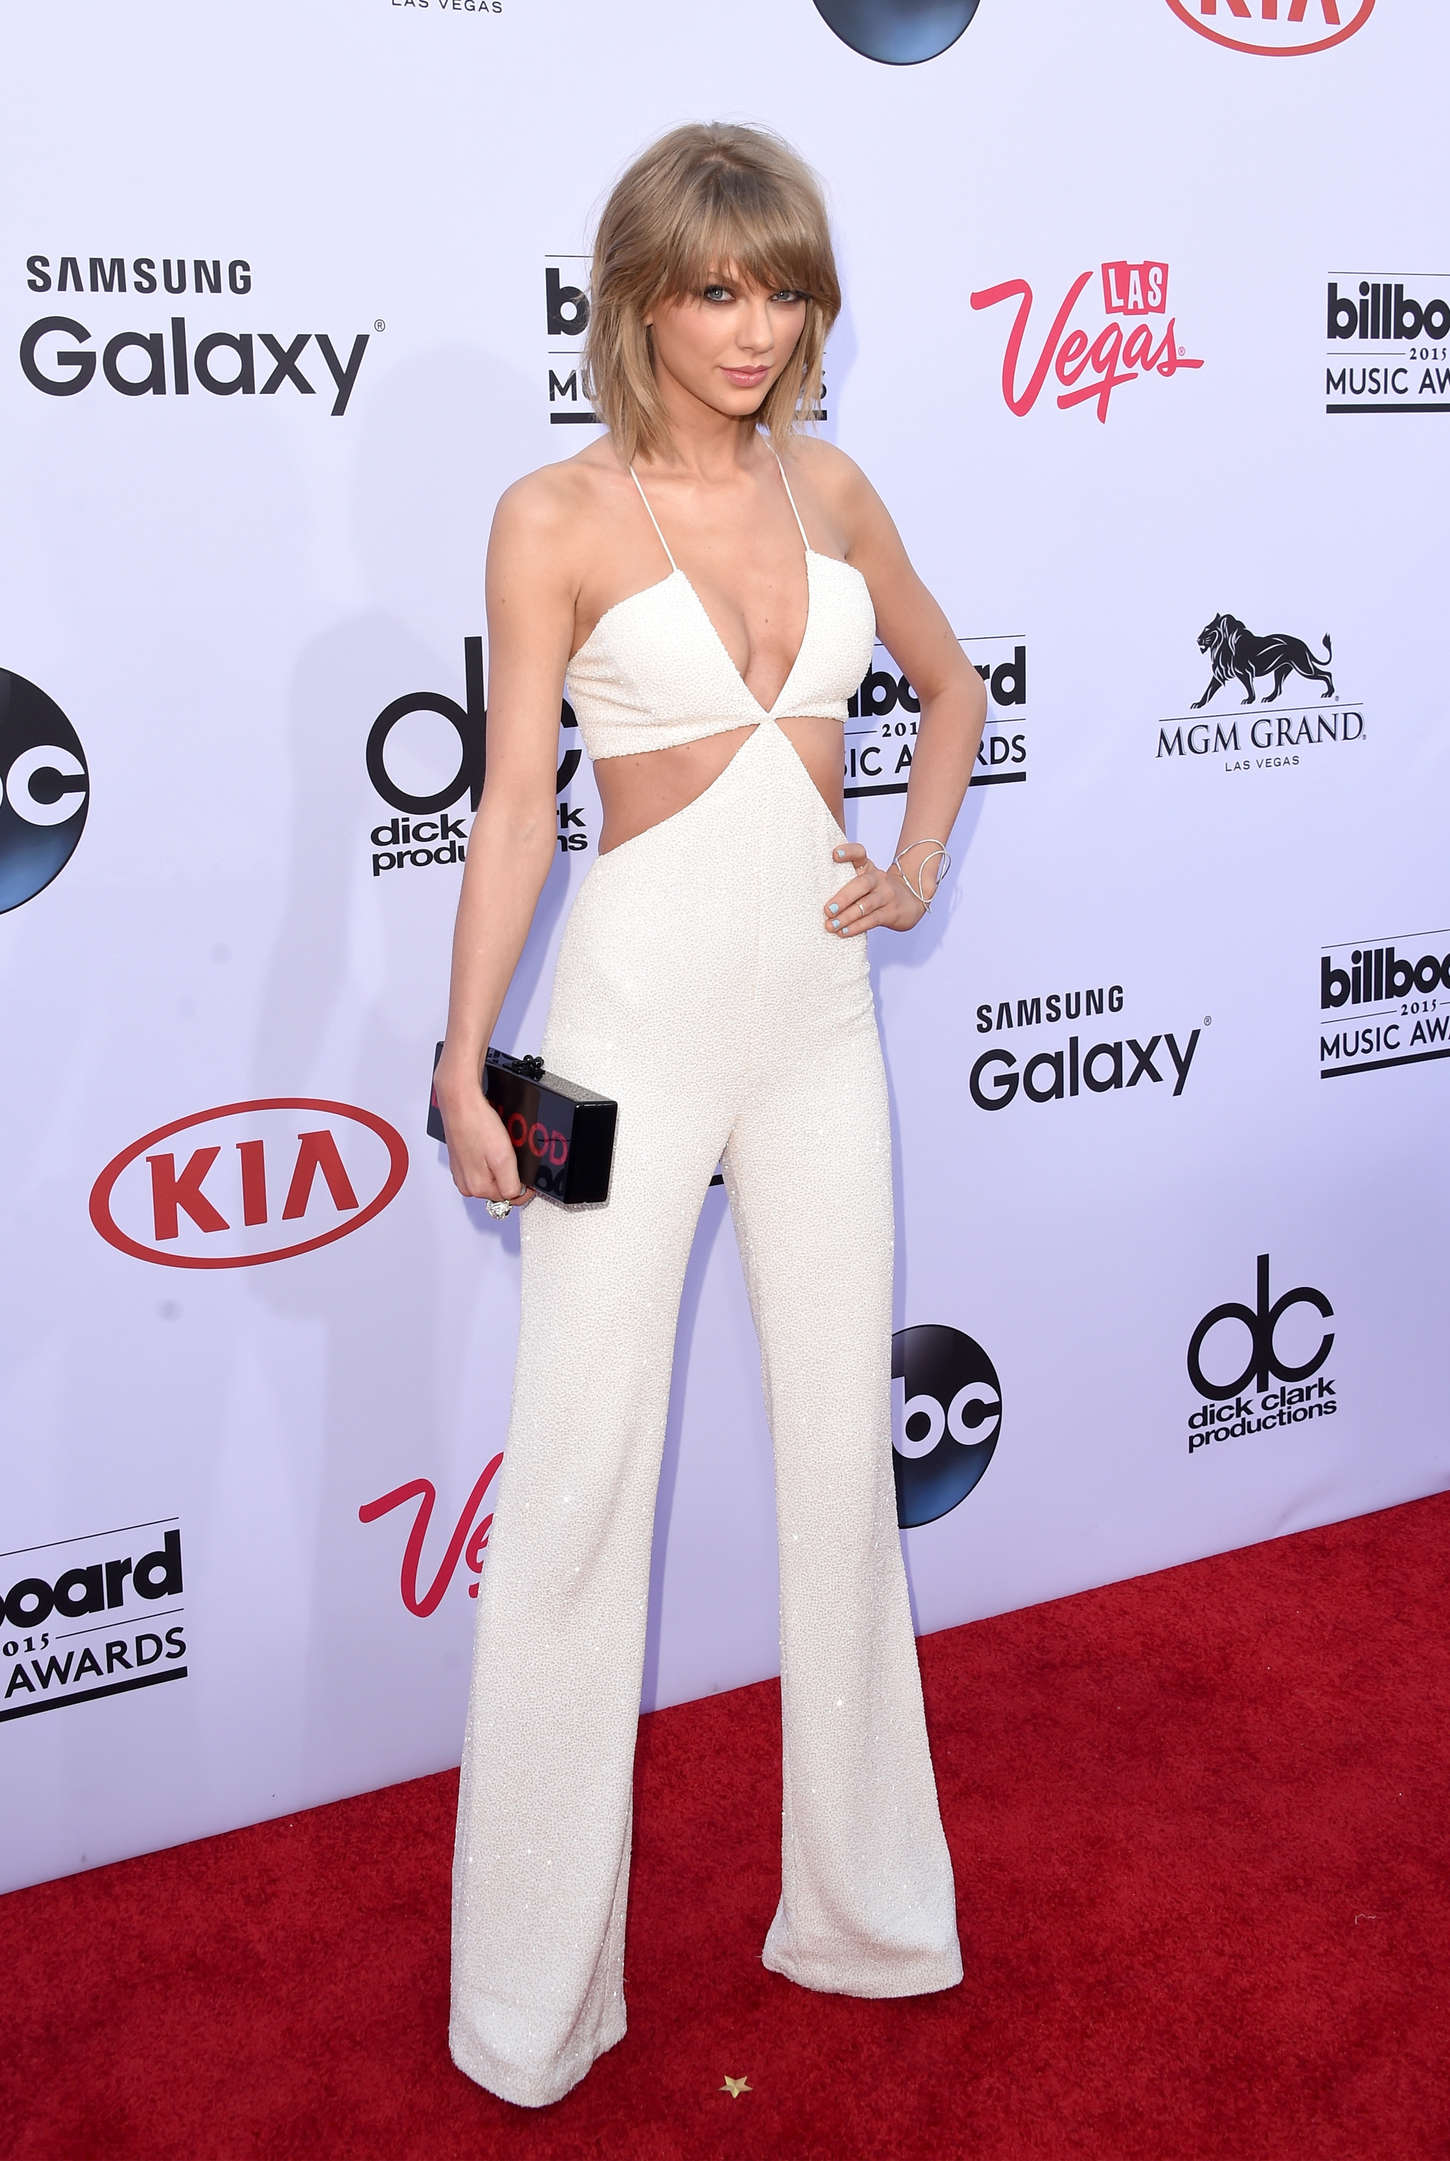 Taylor Swfit 2015 : Taylor Swift : Billboard Music Awards 2015 -05